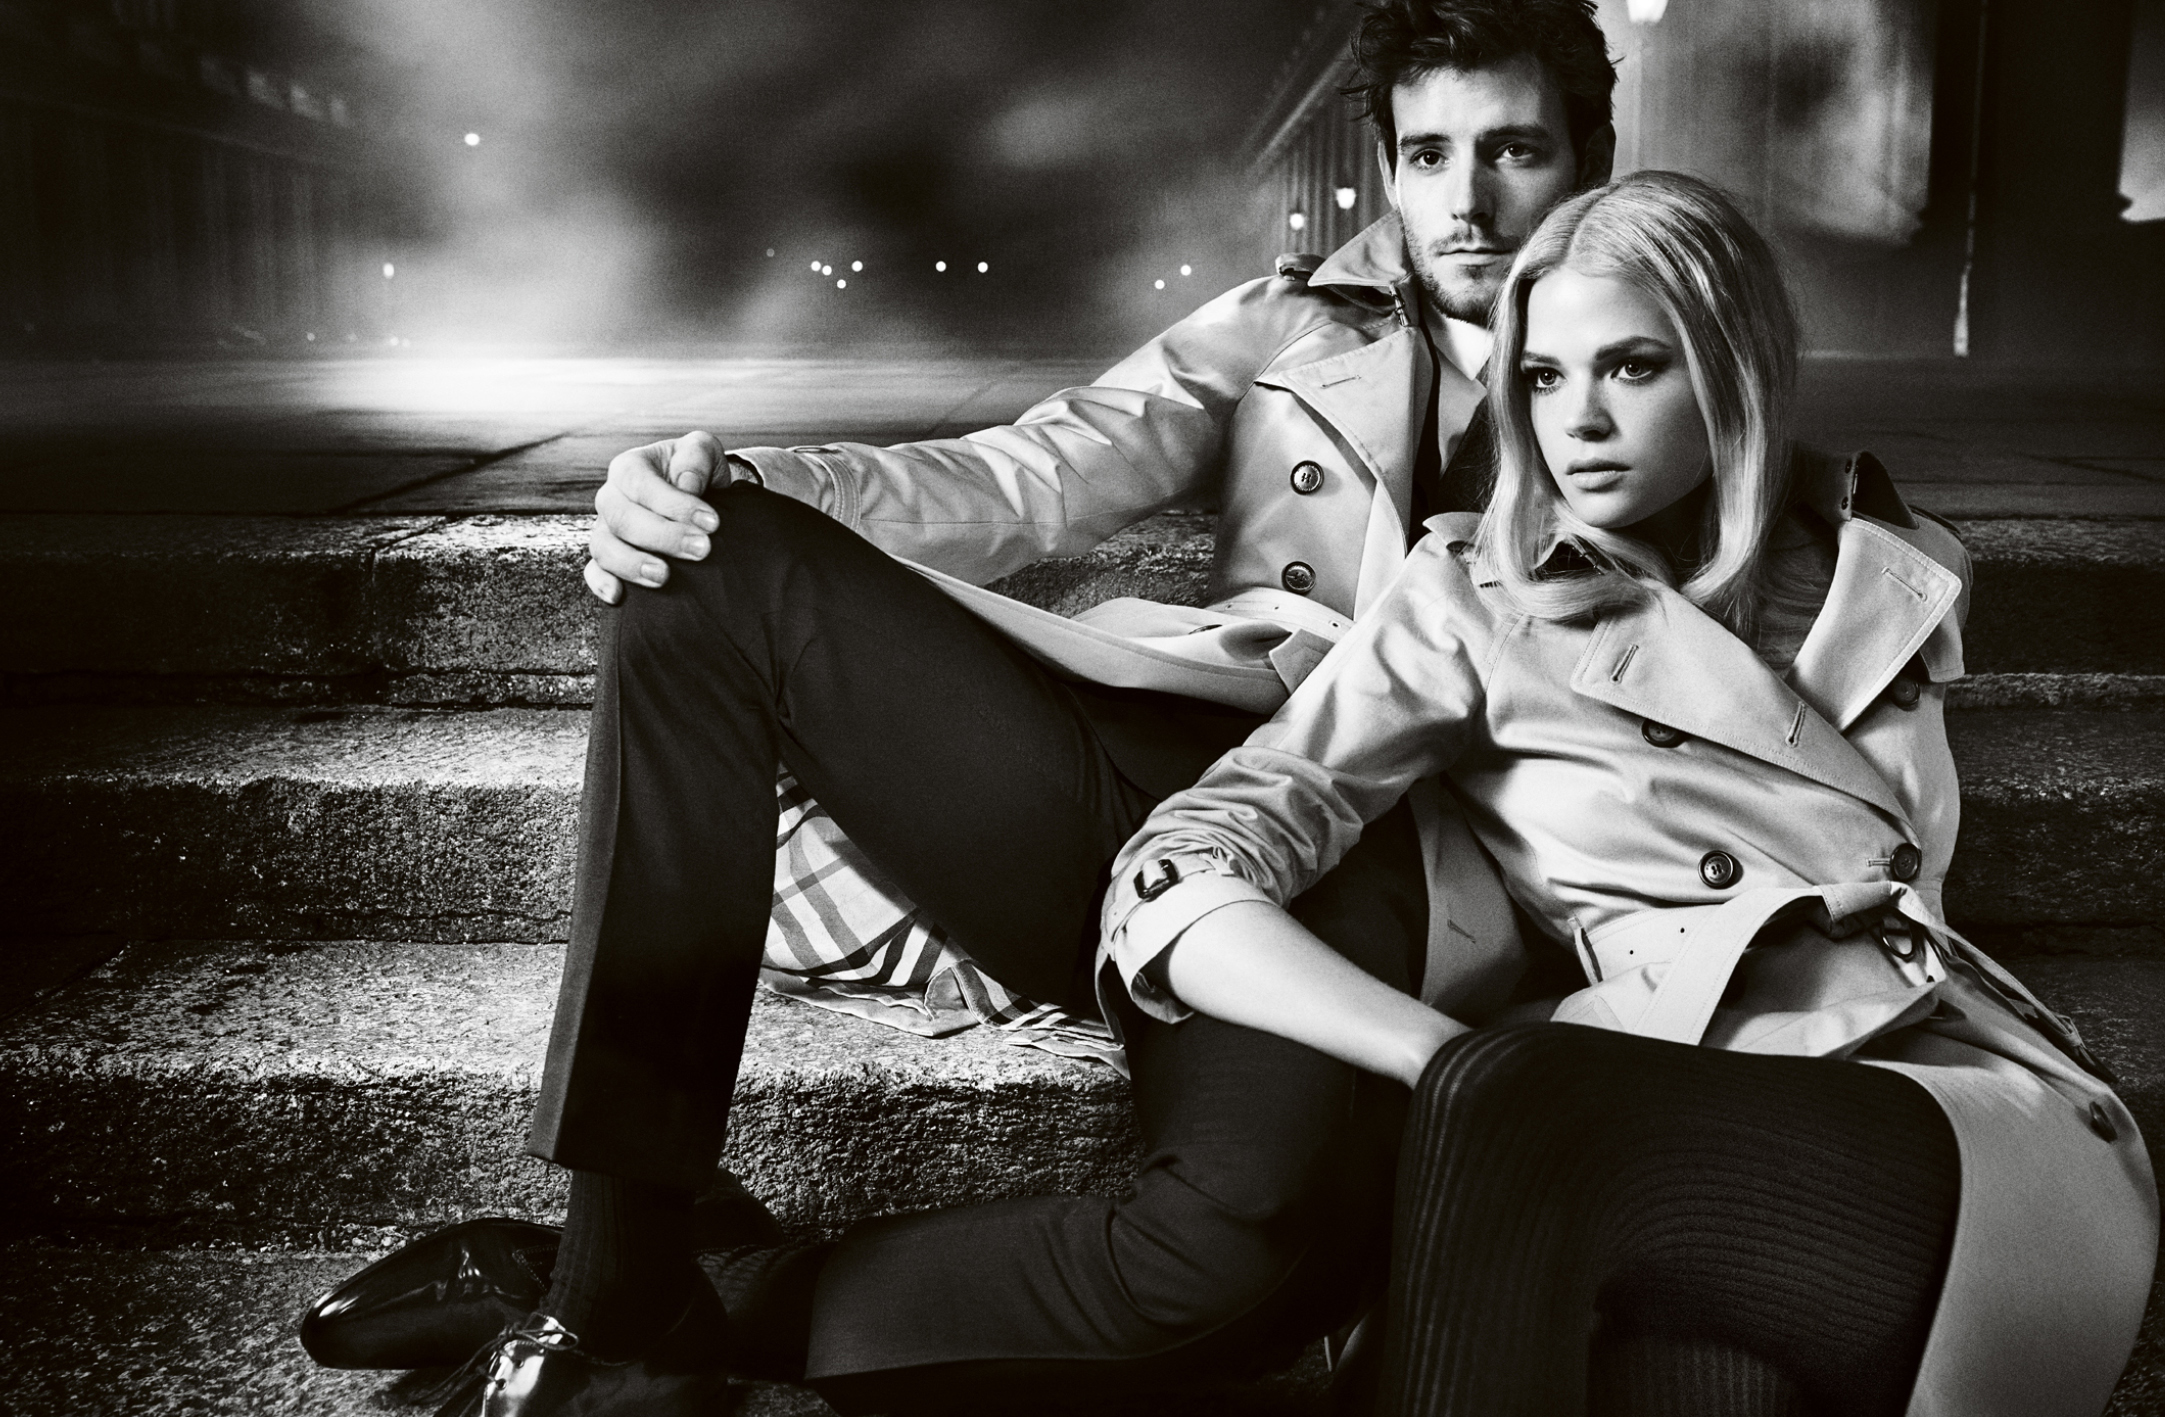 See Fall 2012 Campaigns From Burberry, Louis Vuitton and More